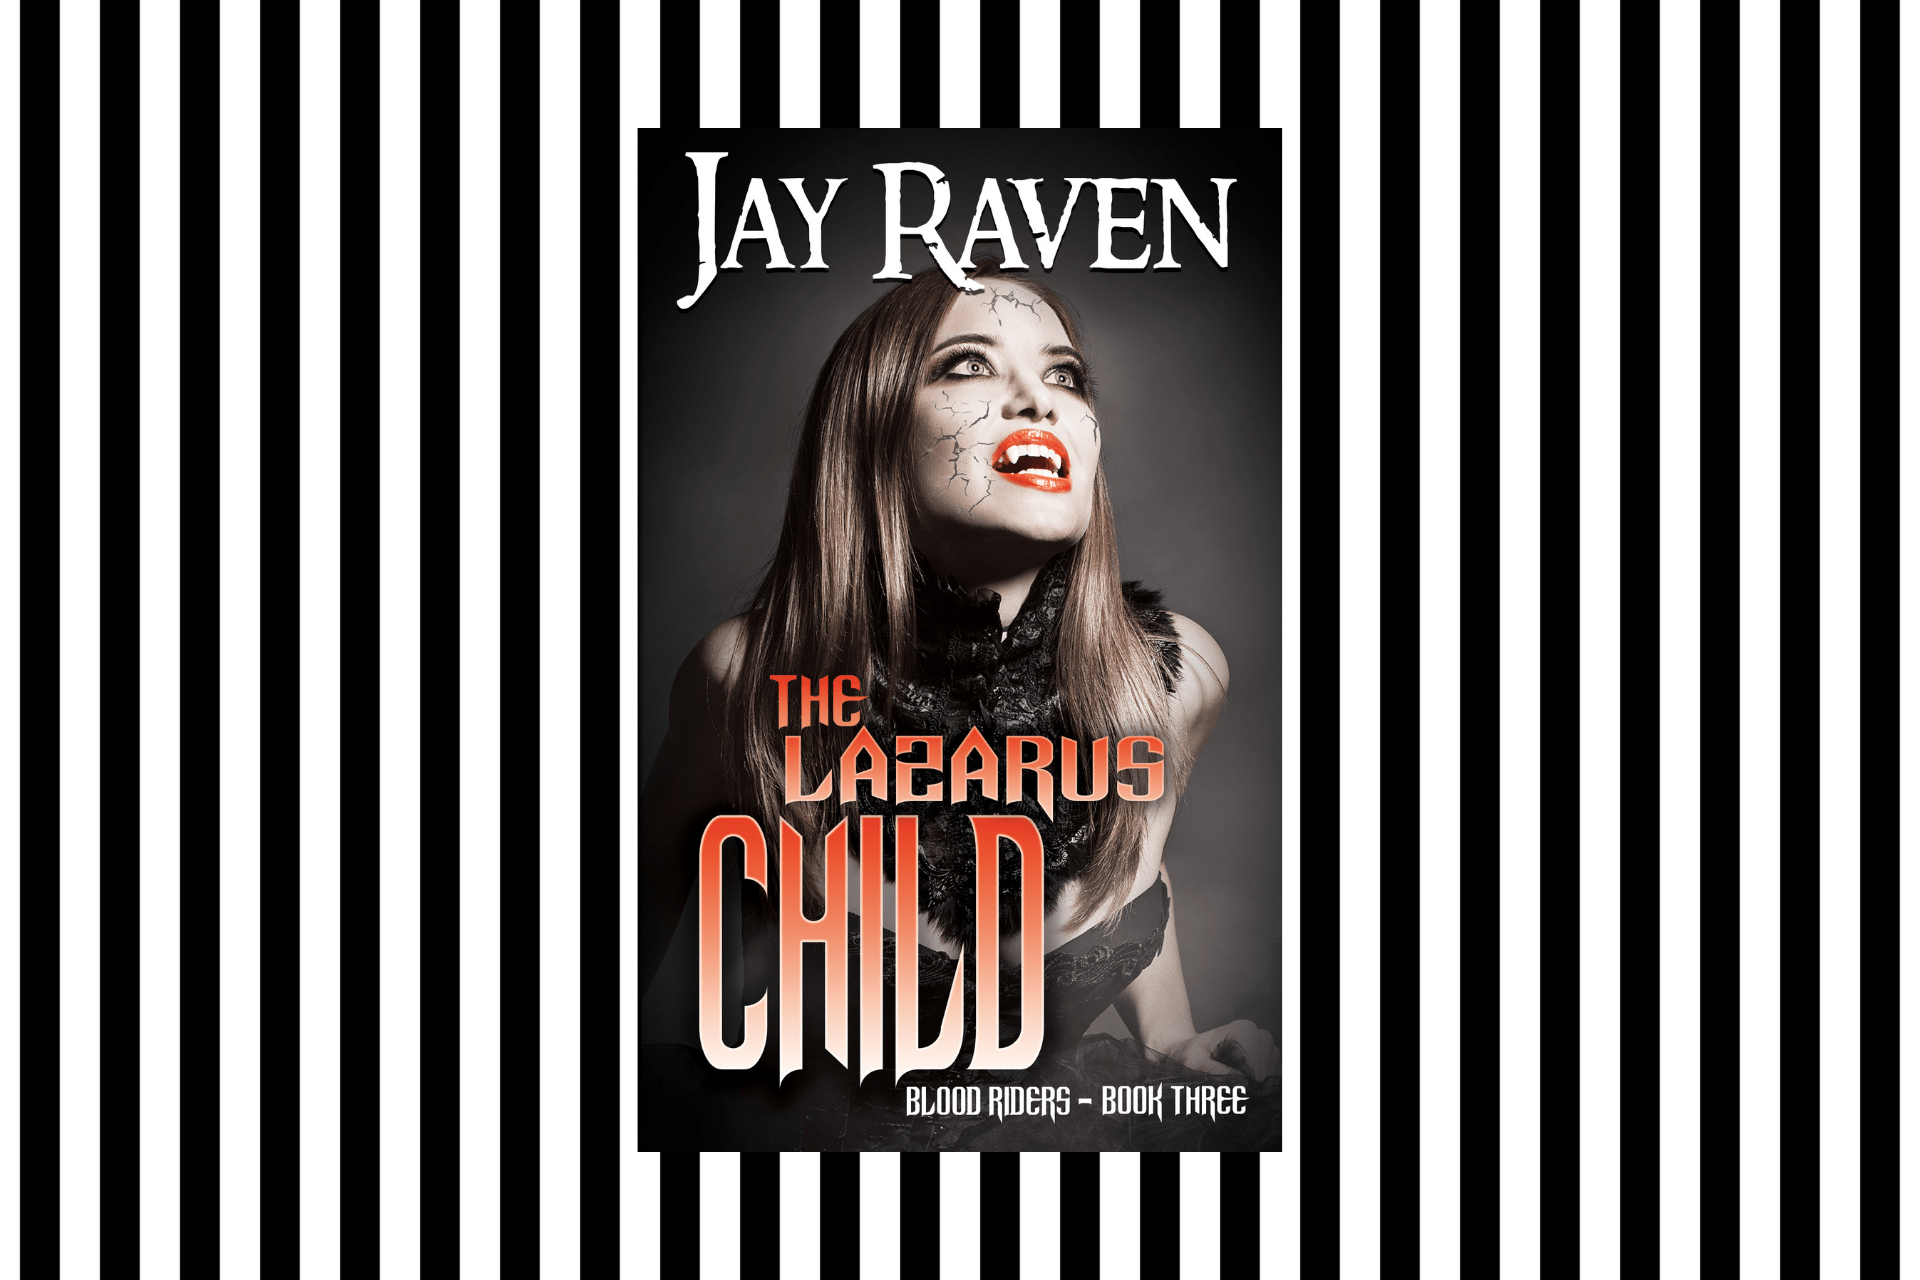 The cover of The Lazarus Child by Jay Raven